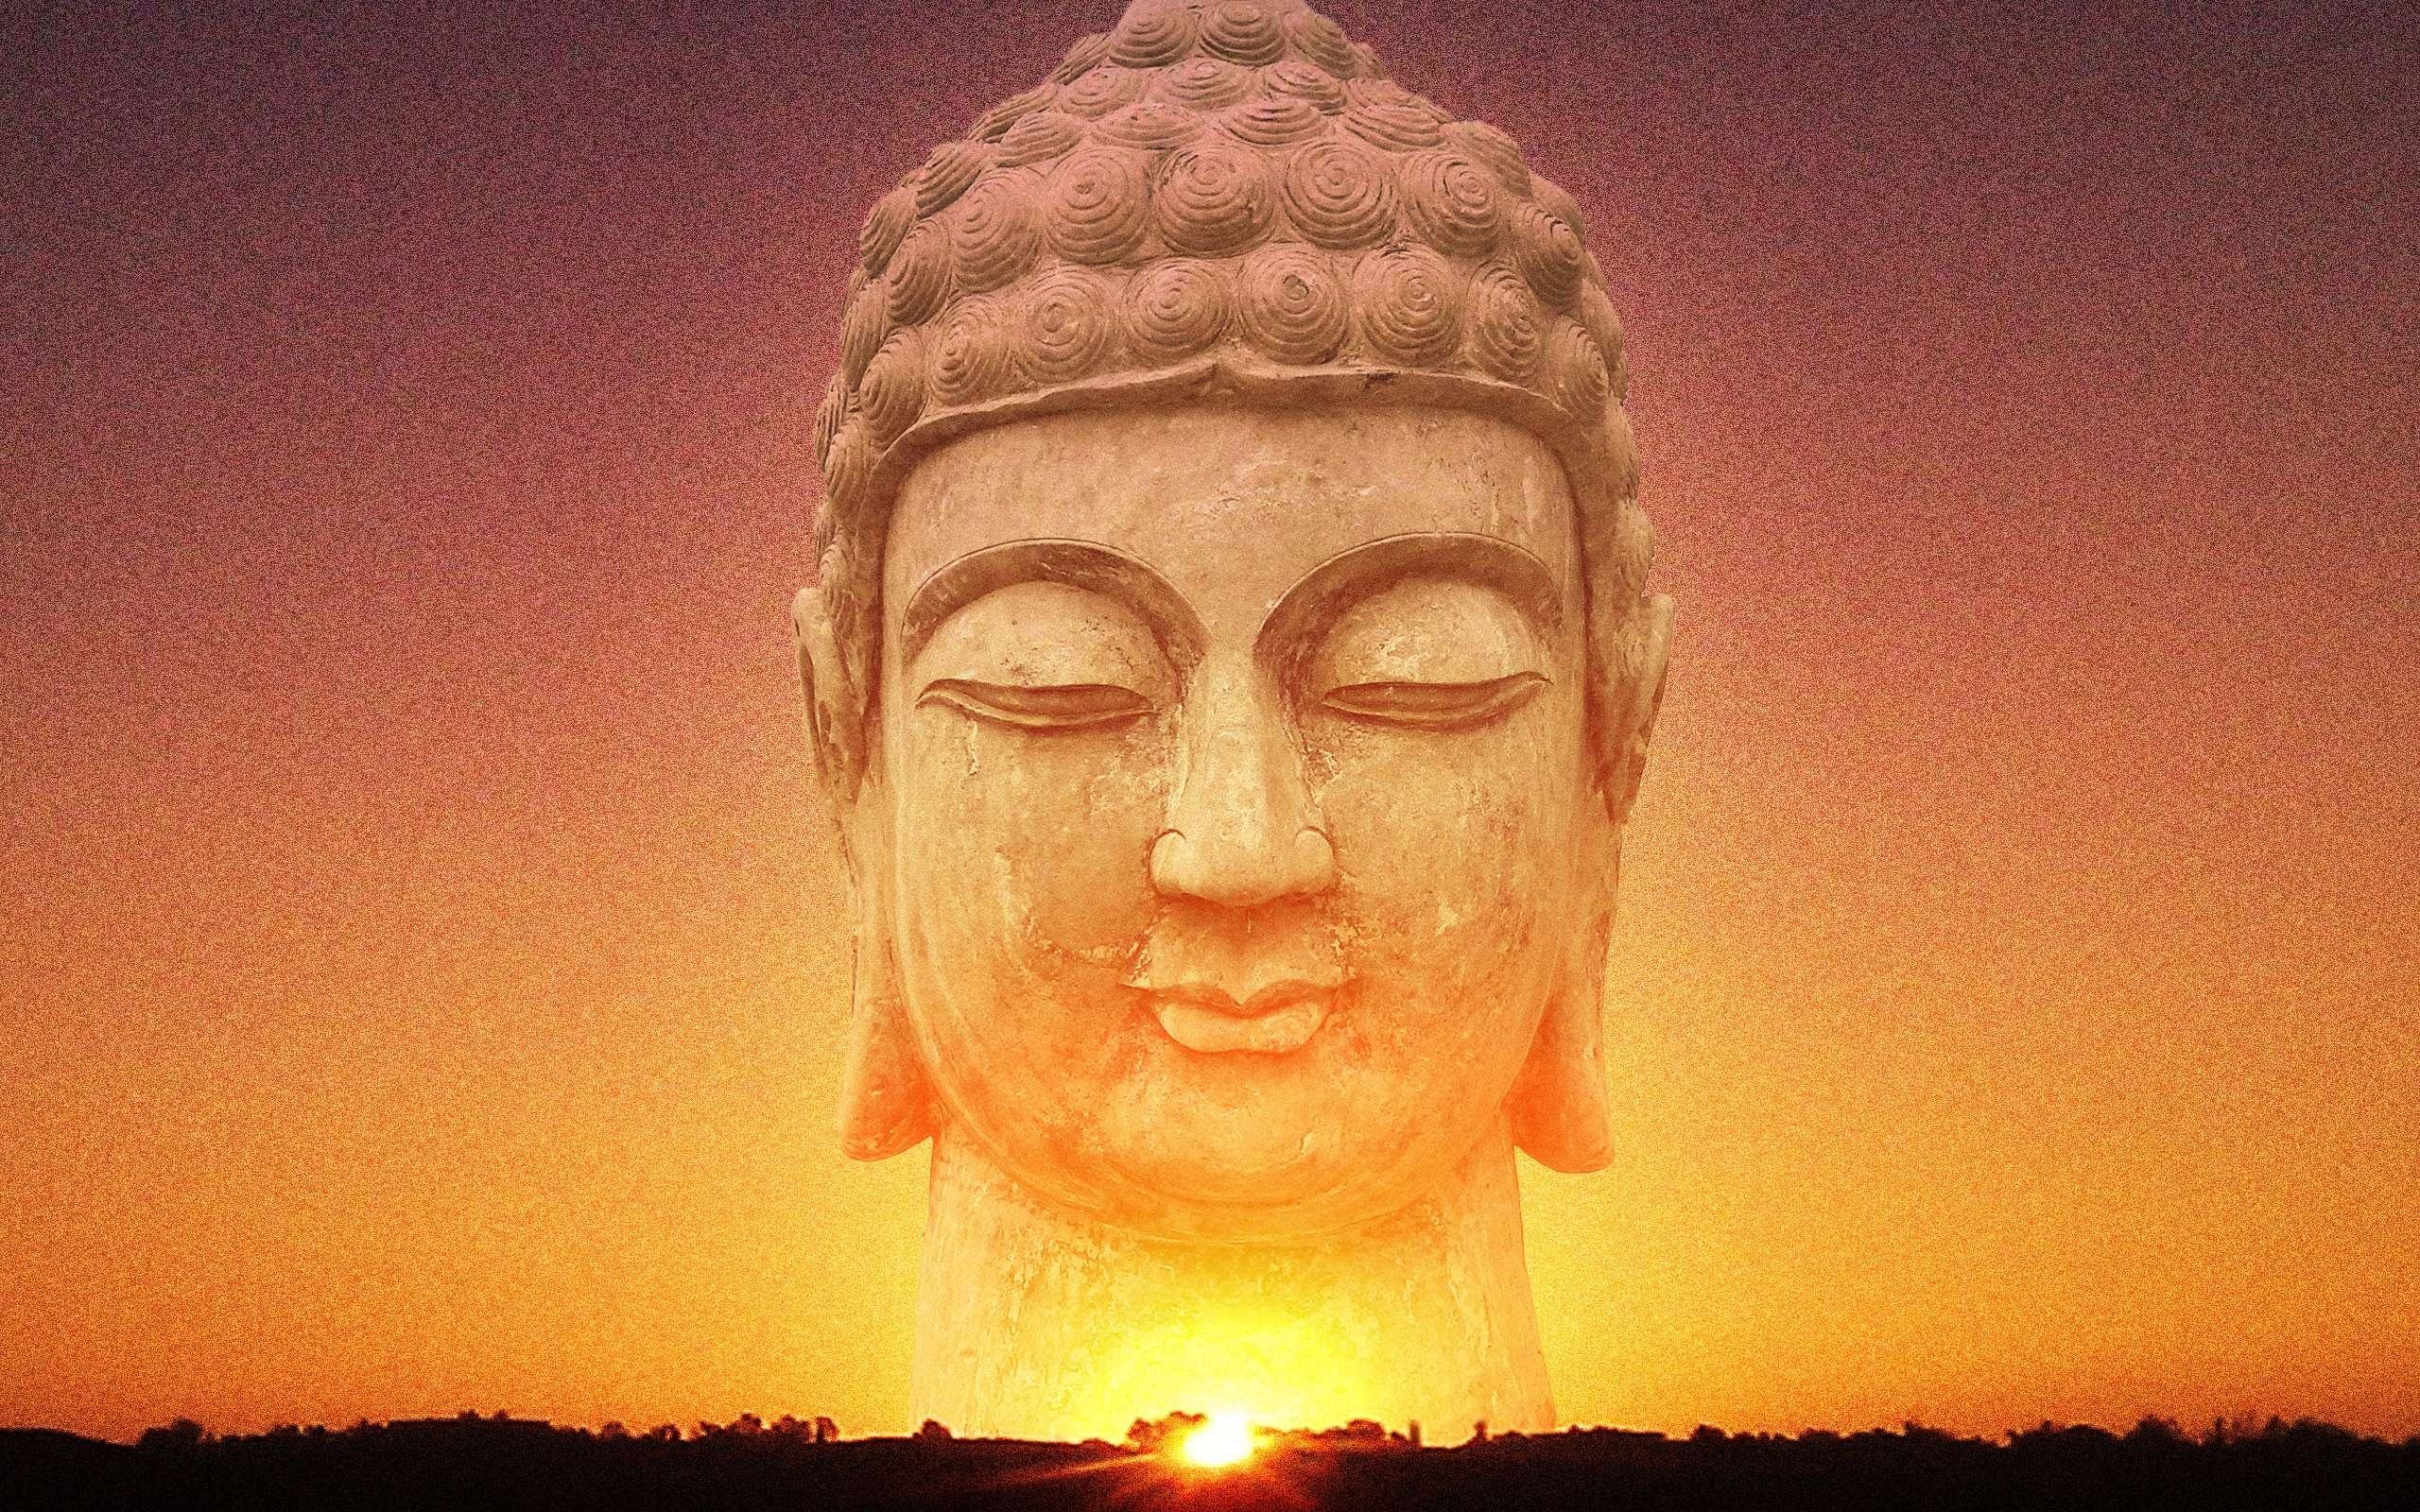 Res: 2560x1600, Wallpaper Lord Buddha Wallpaper Iphone Wallpapers Mobile. Download Free  Wallpaper